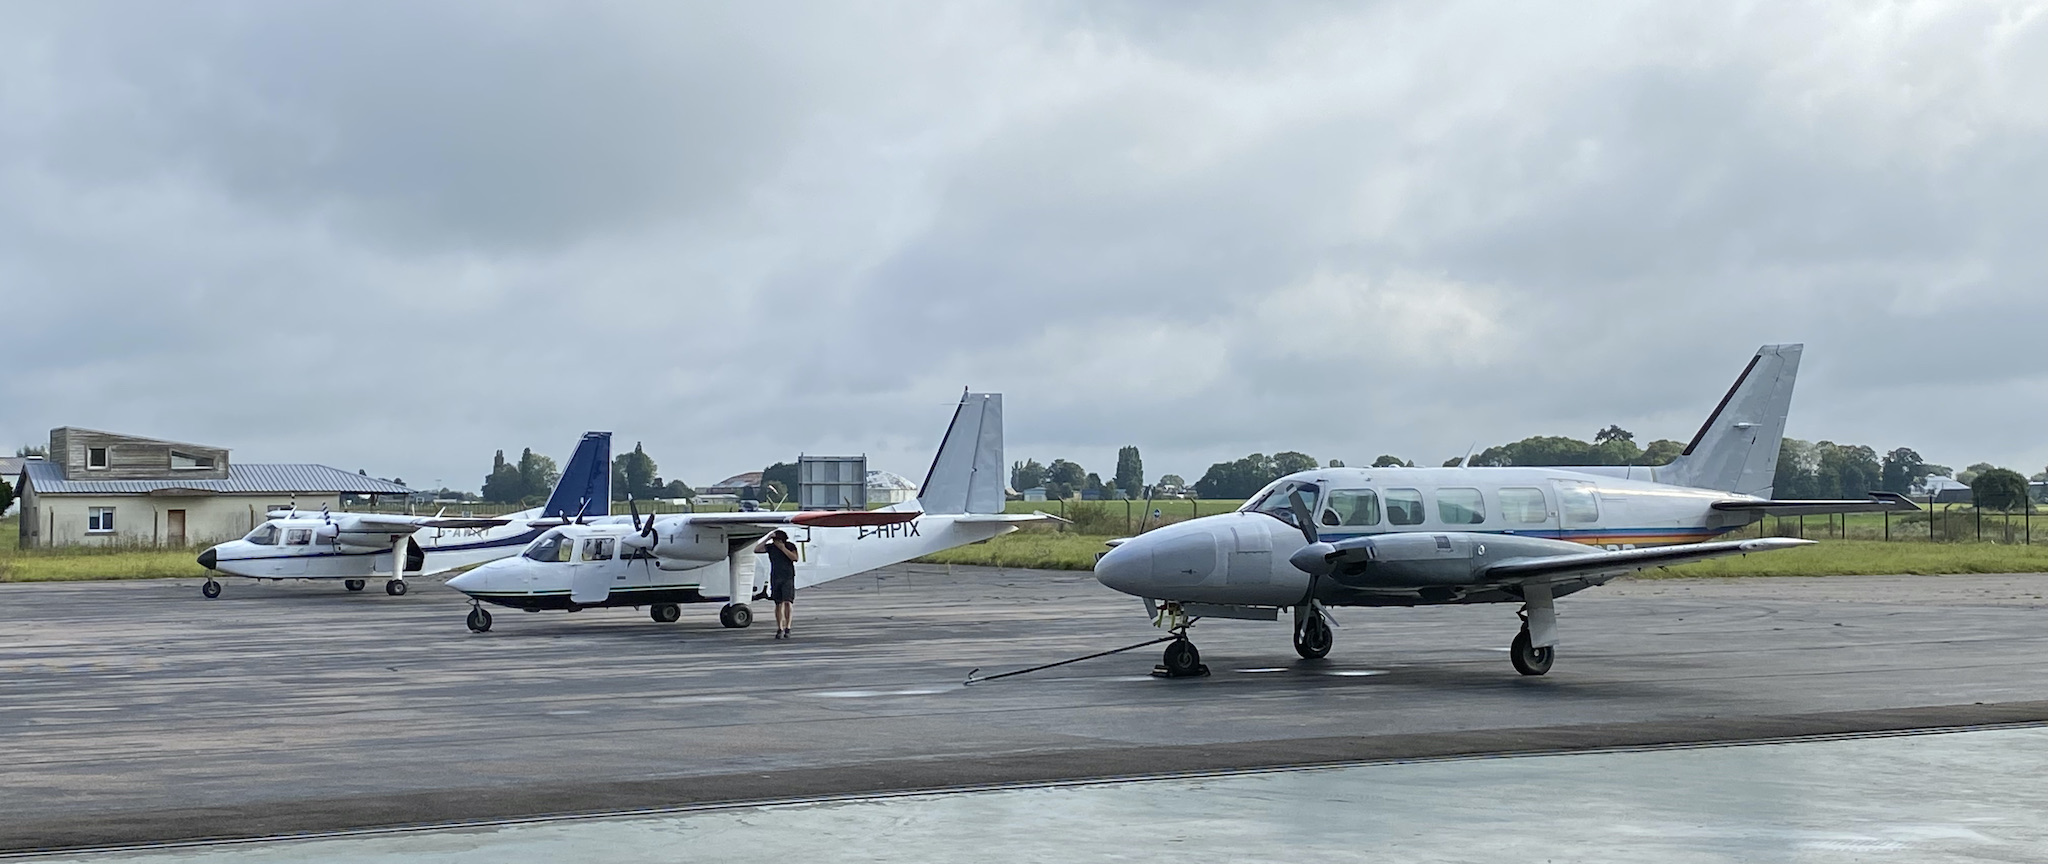 Three aircraft lined up on the flight line